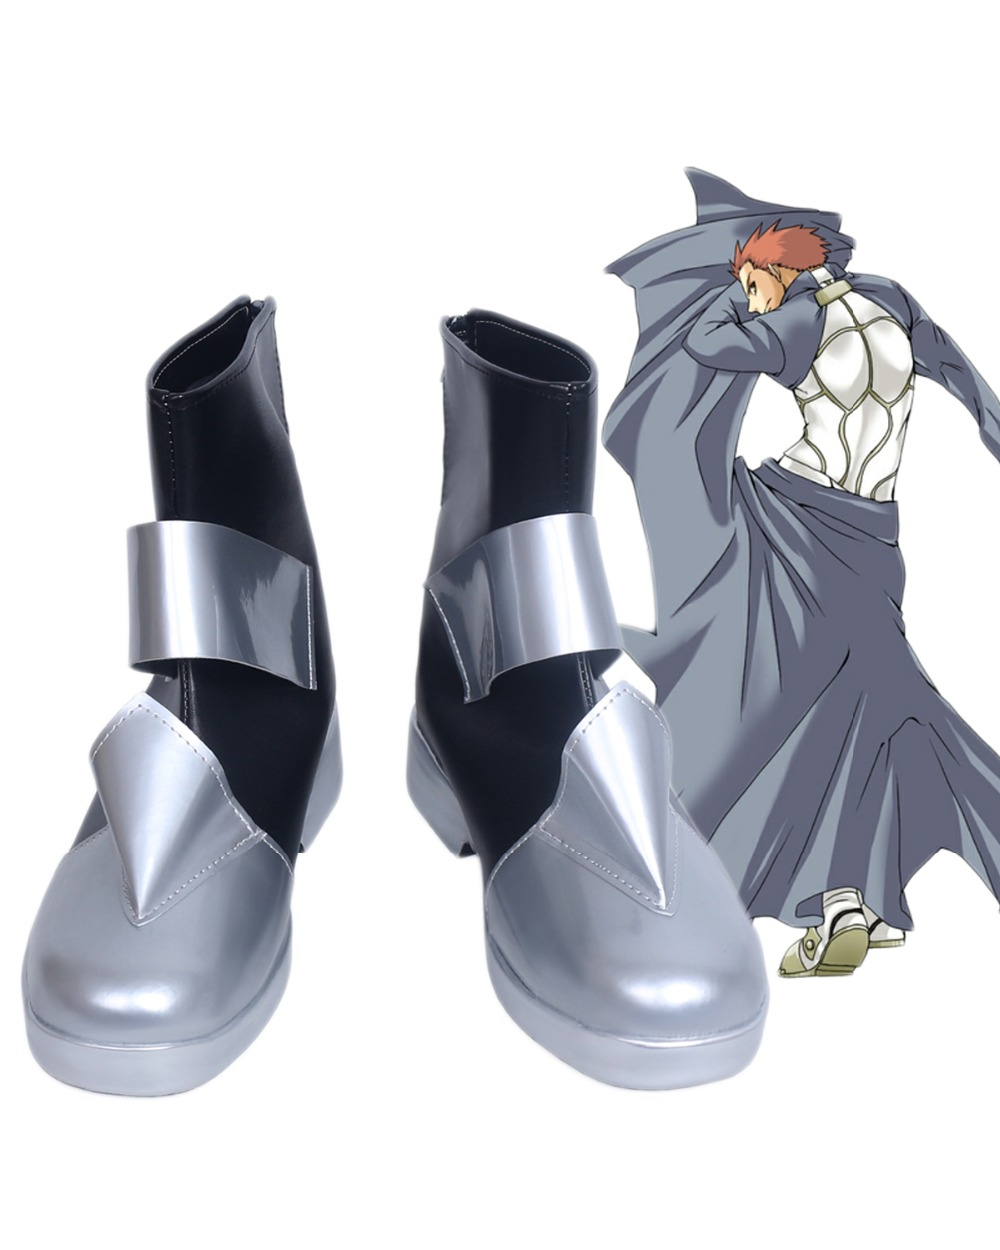 Fate//stay night Fate//kaleid liner Shirou Emiya Cosplay Boots Shoes Custom Made